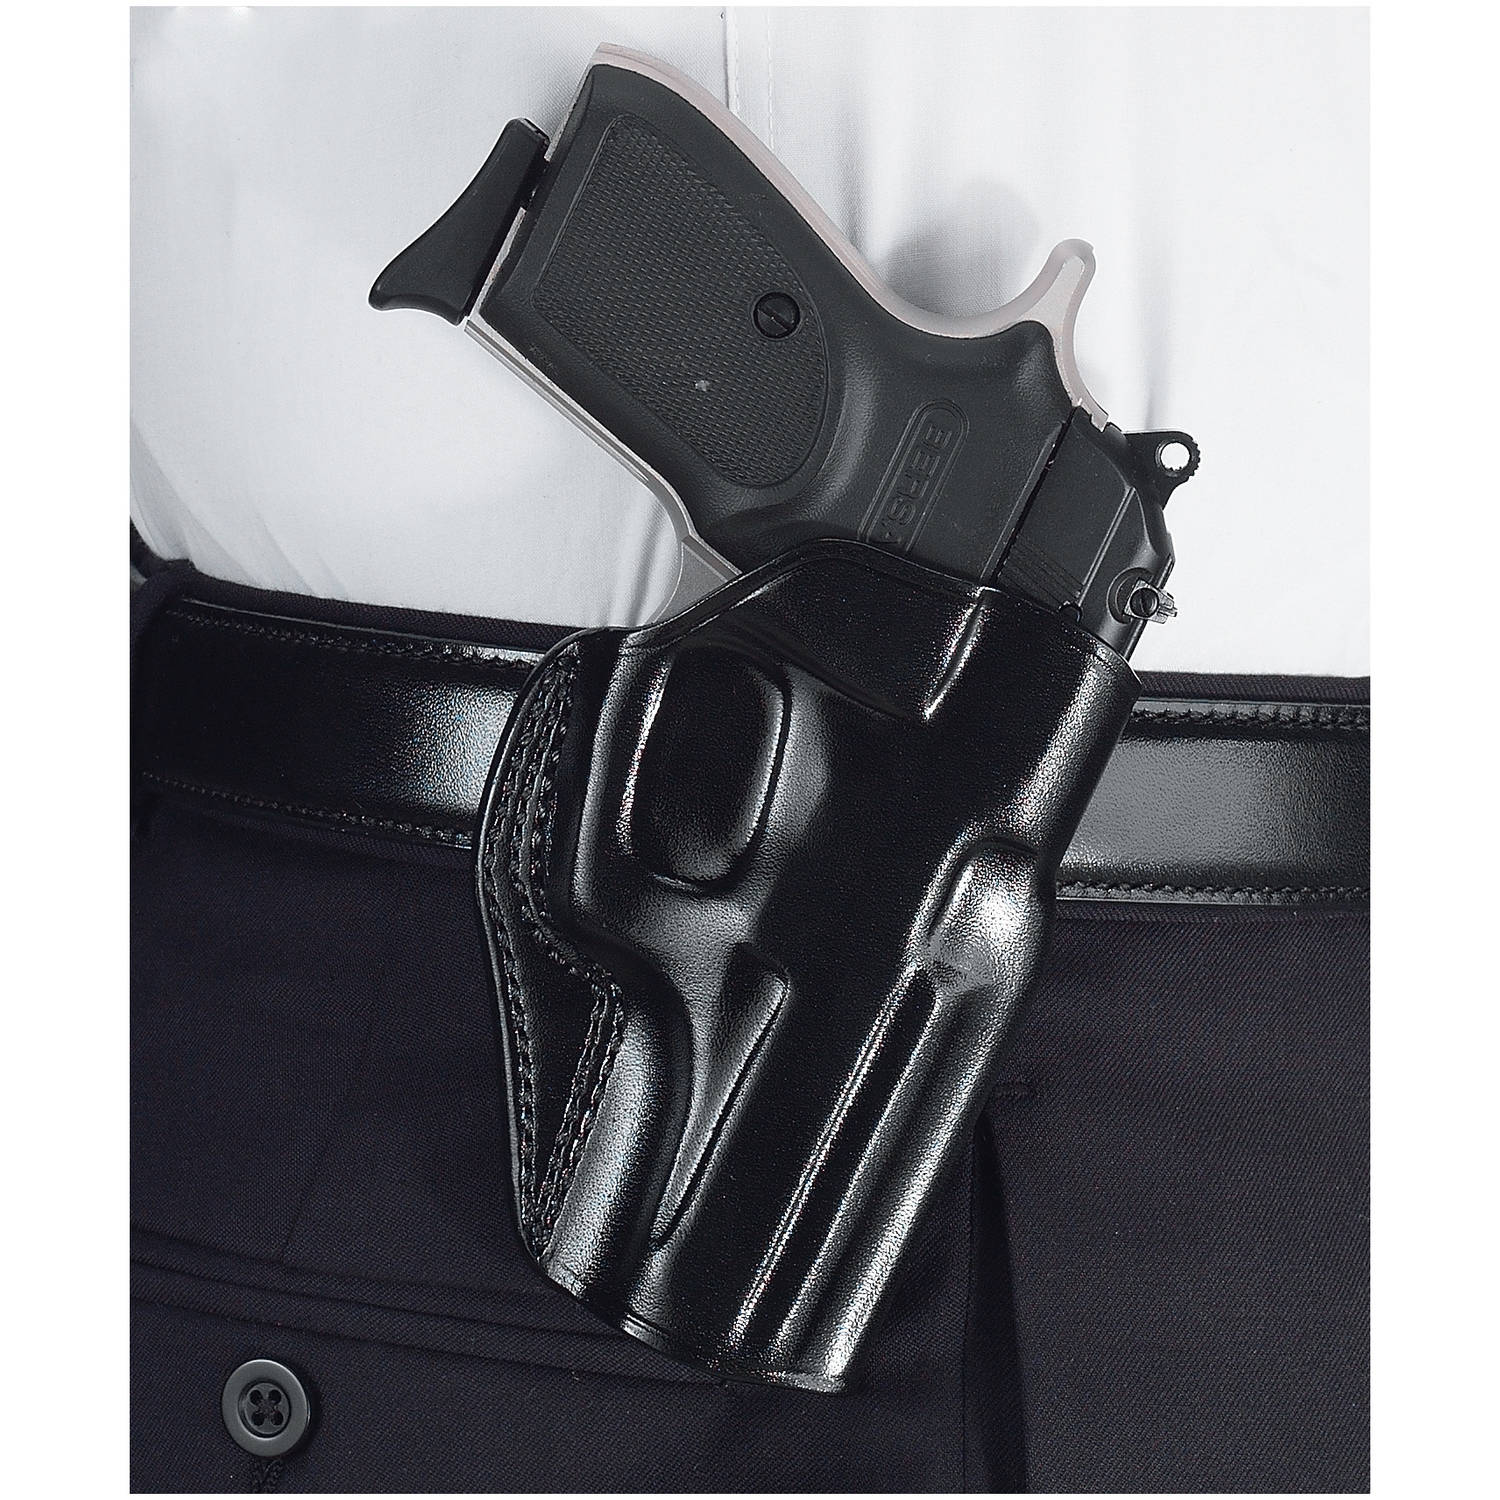 Galco Stinger Belt Holster, Fits Walther P22, Black Leather